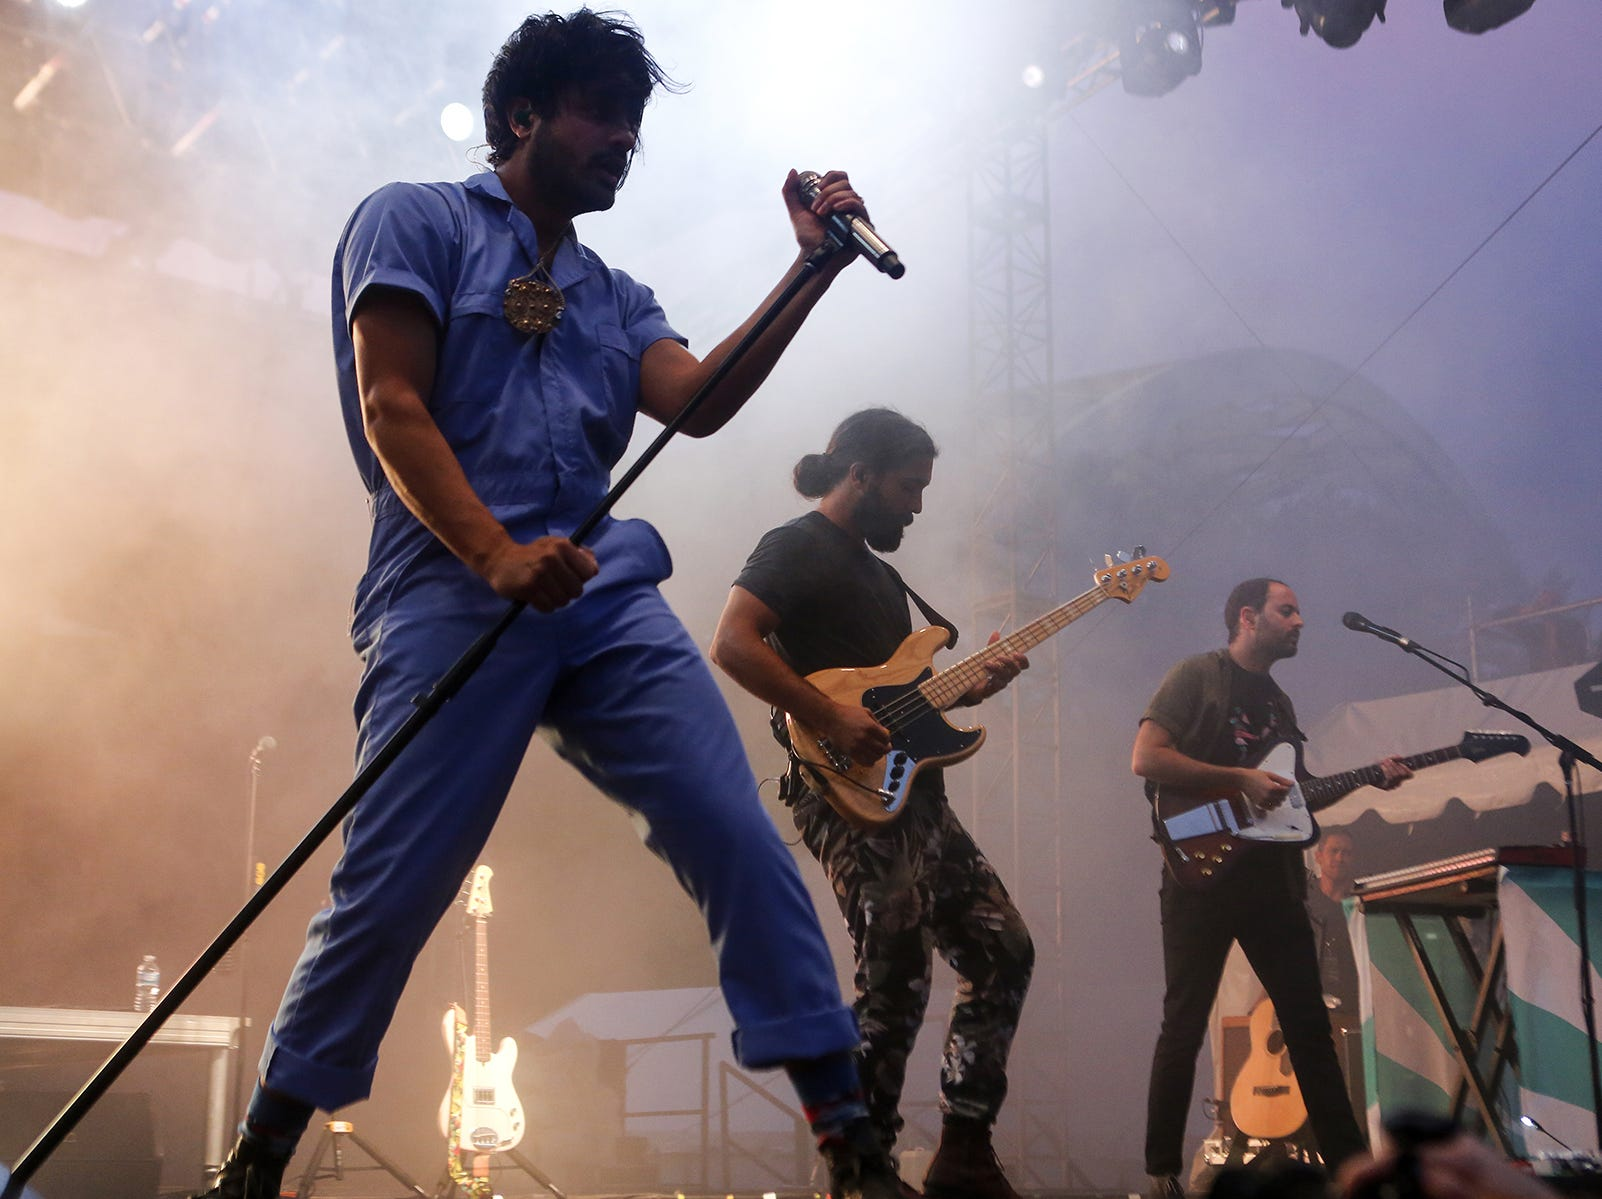 Young The Giant performs during the first day of Bunbury Music Festival on Friday, June 1, 2018, at Sawyer Point, in Cincinnati.